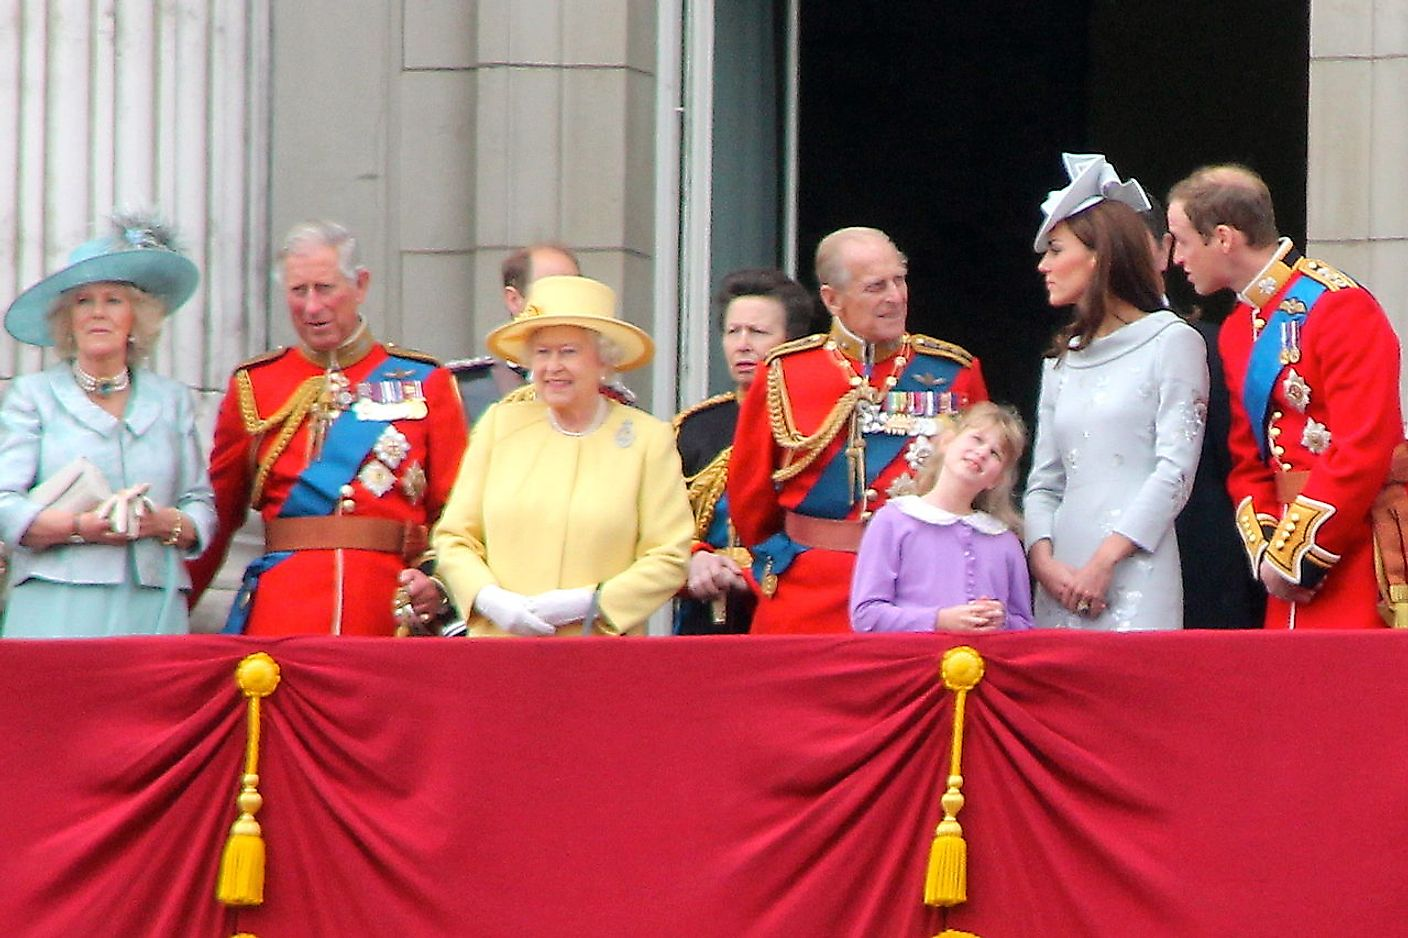 The British Royal Family with Queen Elizabeth II in the yellow dress.